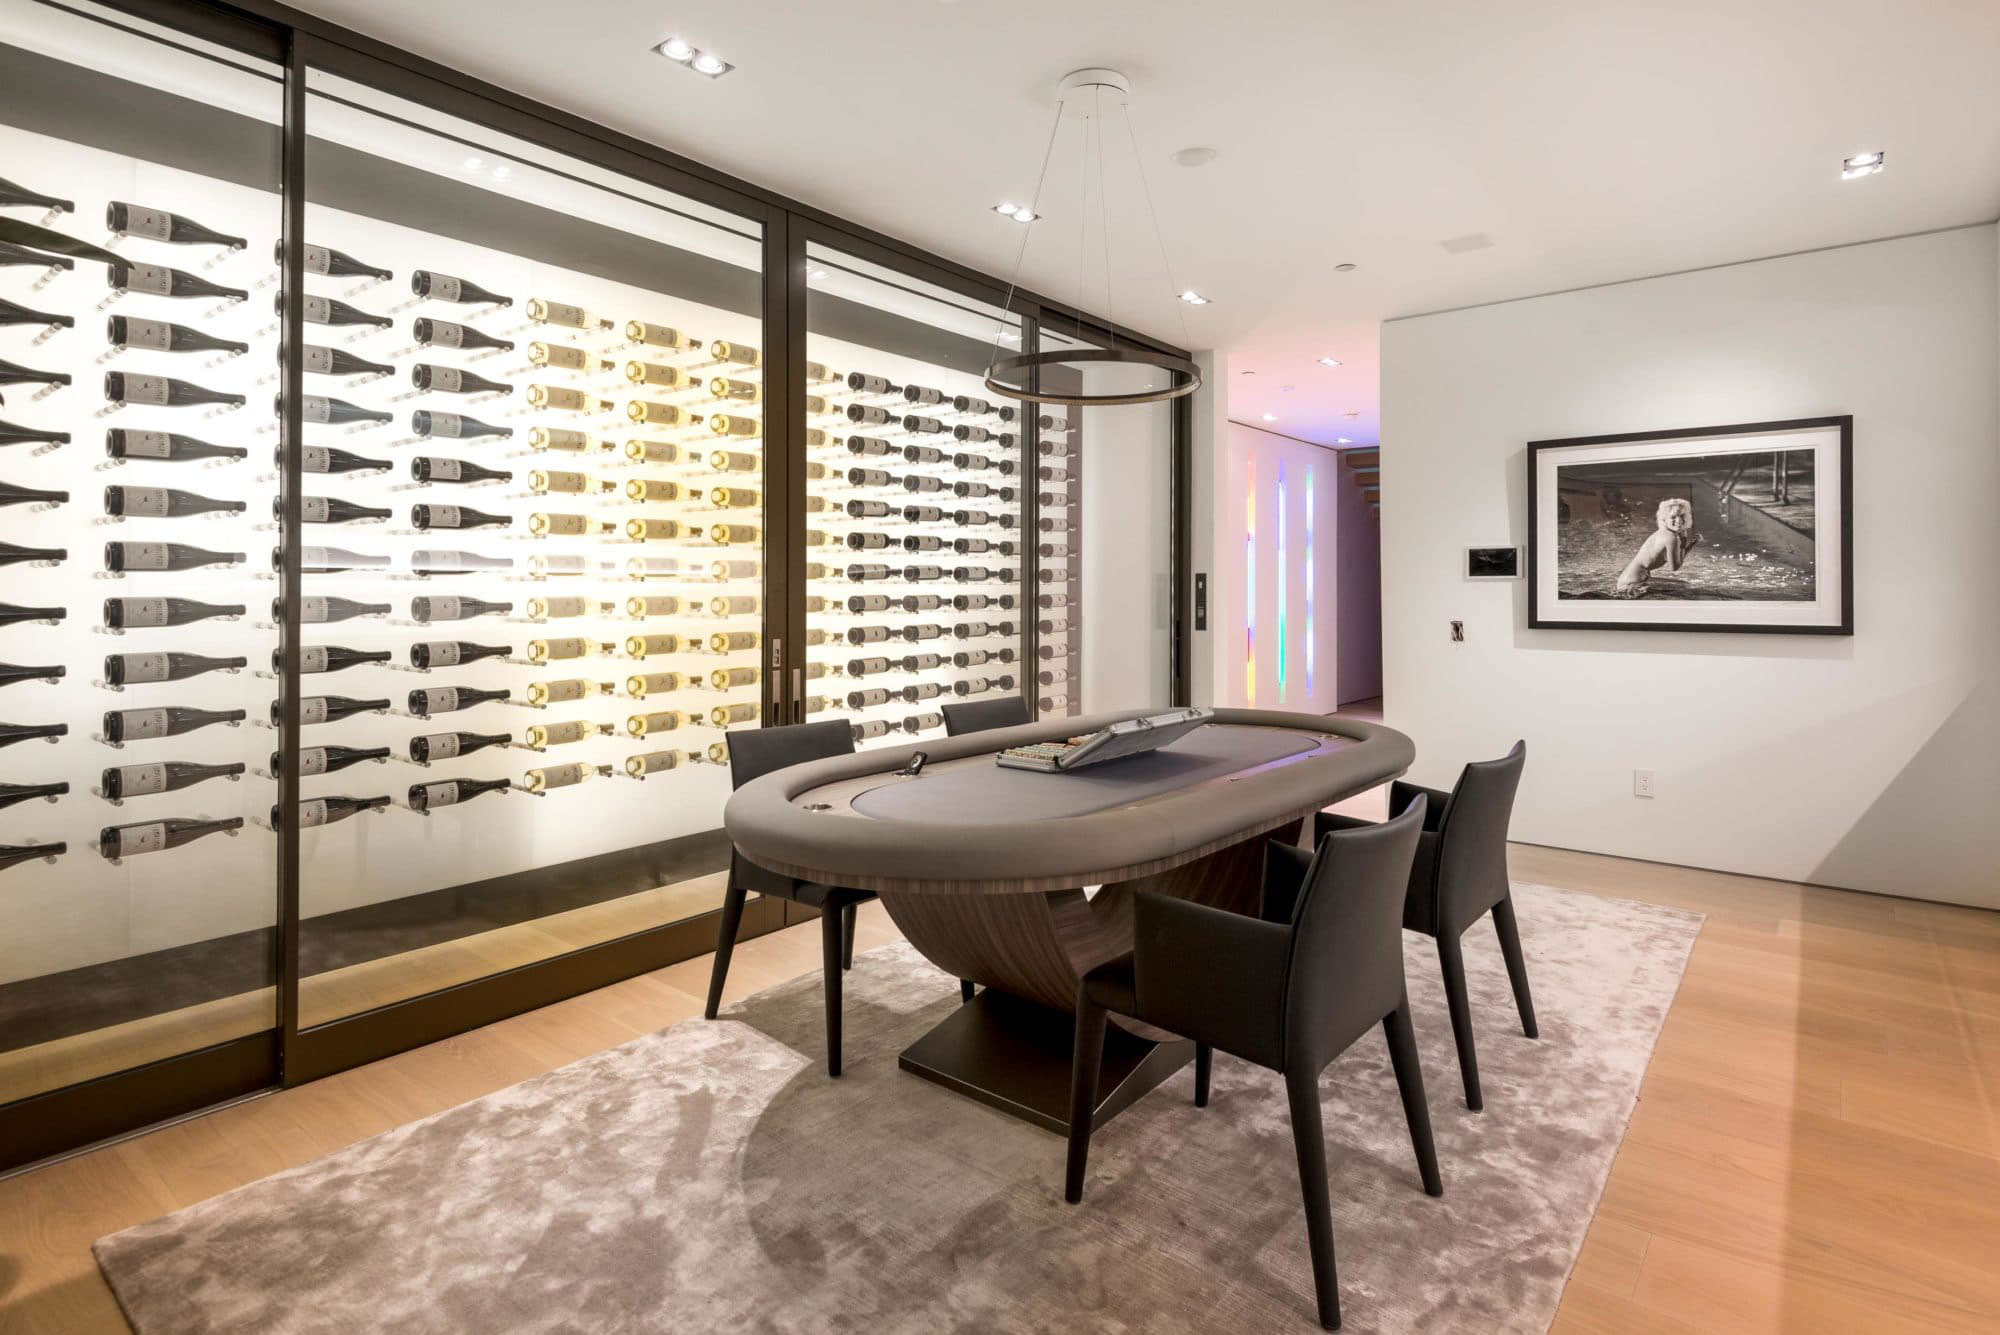 This architectural marvel is equipped with the latest in-home inspirations and cutting-edge technology, including this one-of-a-kind 600-bottle wine room with a floating backlit display, accessed via a thumbprint recognition system.